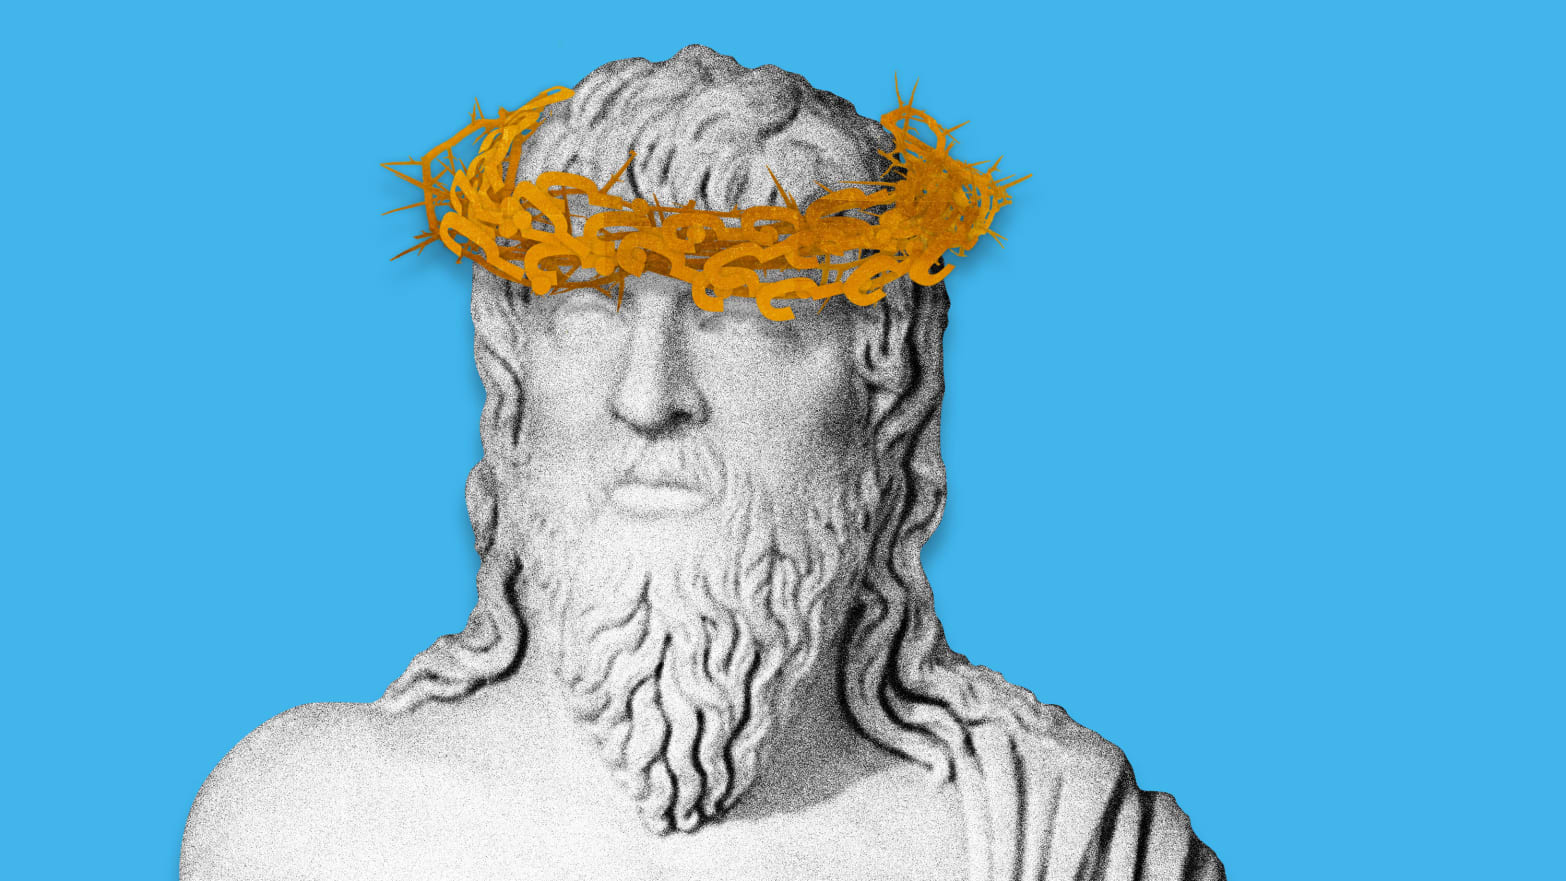 Jesus v. Apollonius: The Ancient Debate Over the Real Son of God